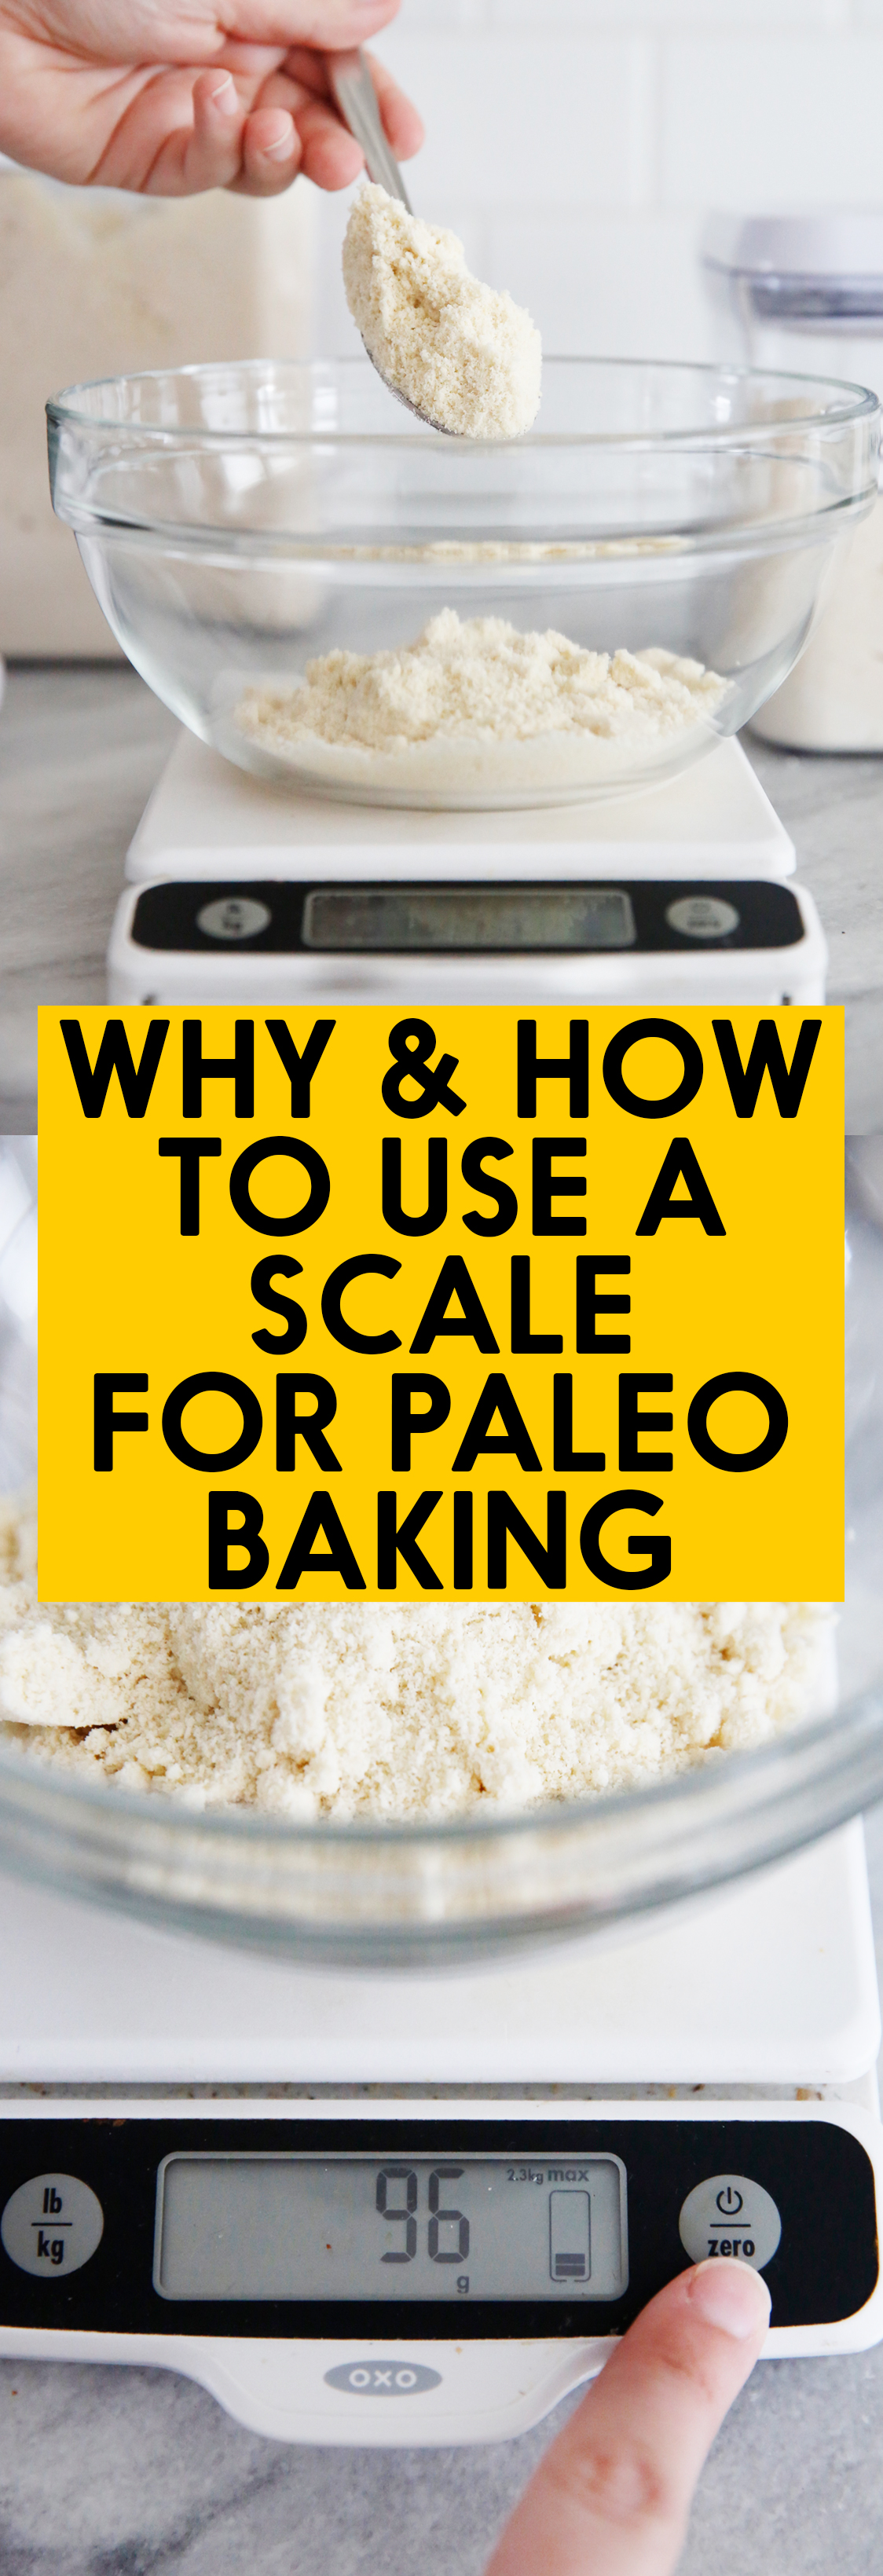 Using a scale for baking